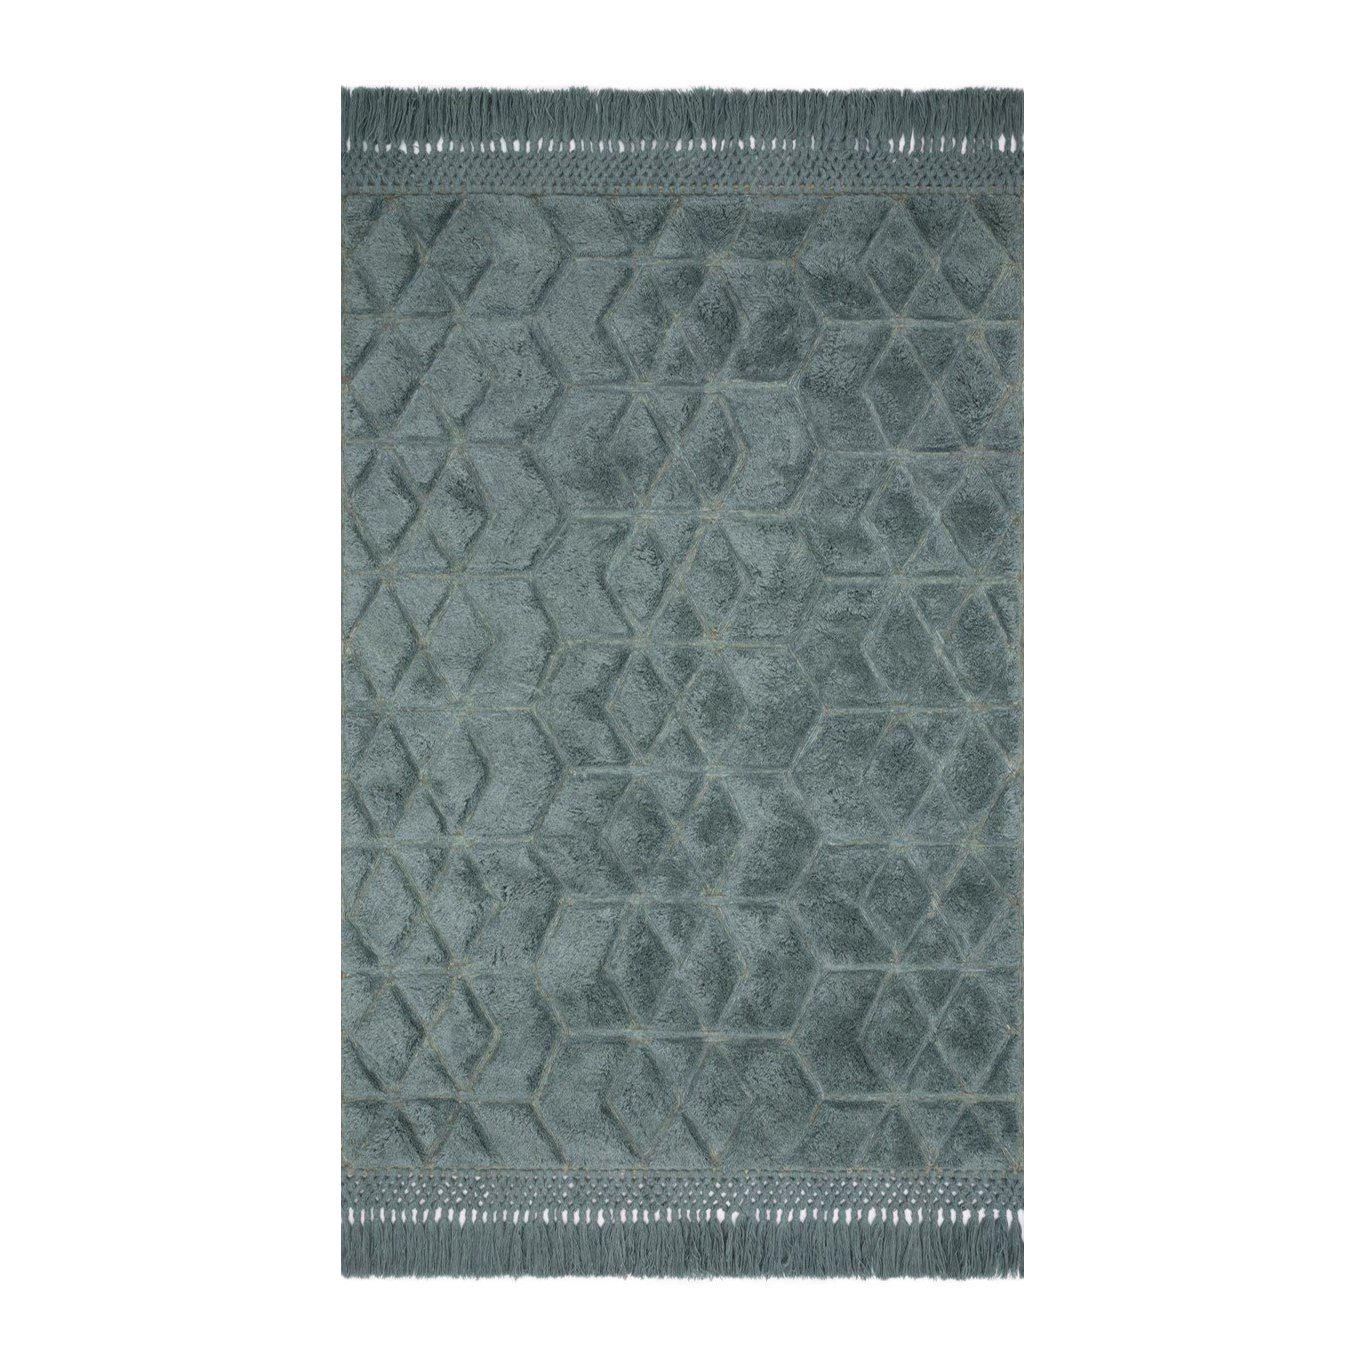 Joanna Gaines Laine Rug Collection - LAI-02 Slate-Loloi Rugs-Blue Hand Home